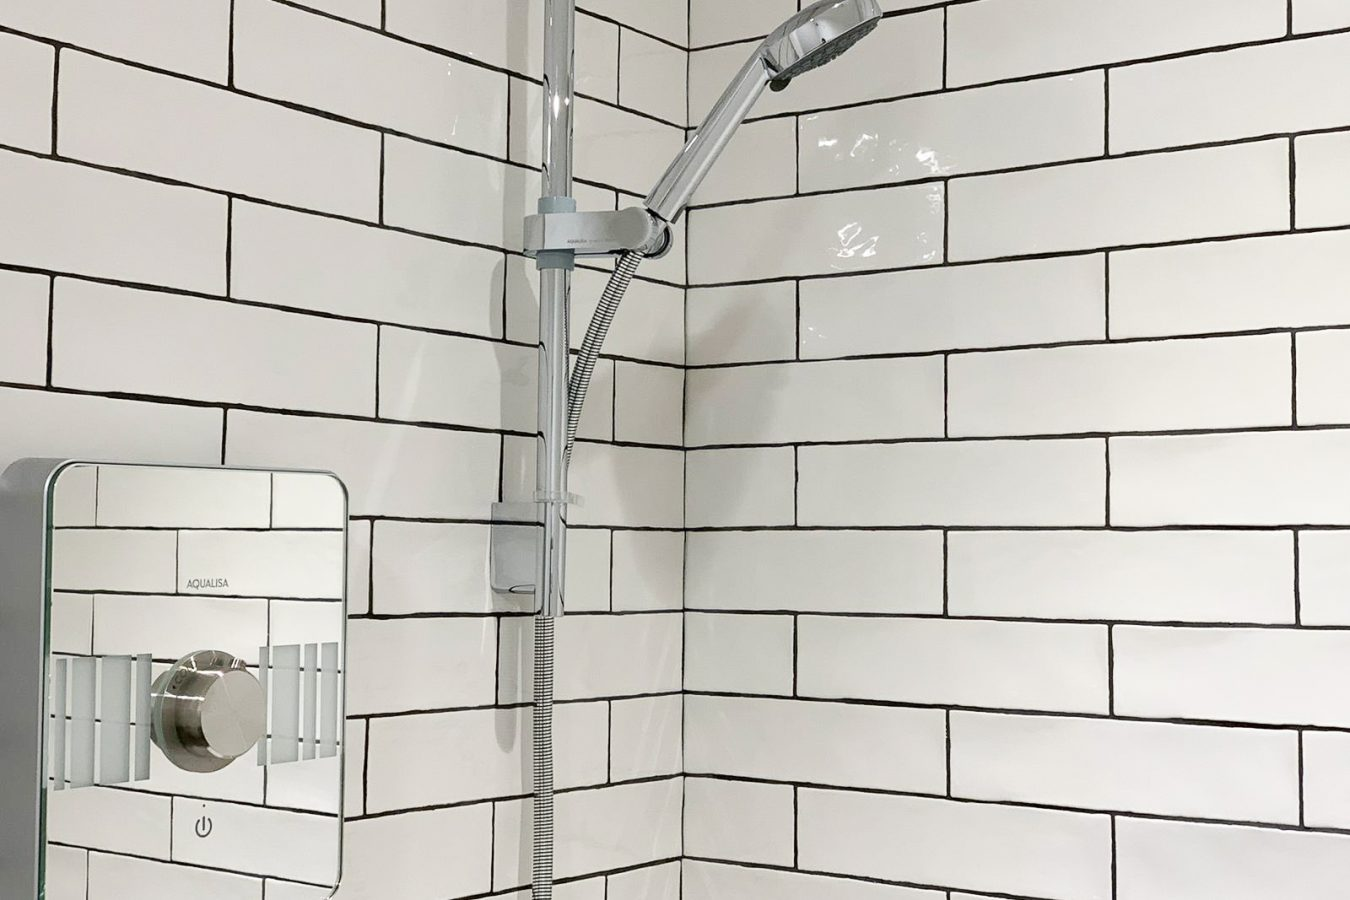 White tiles and silver shower in a new modern office bathroom.